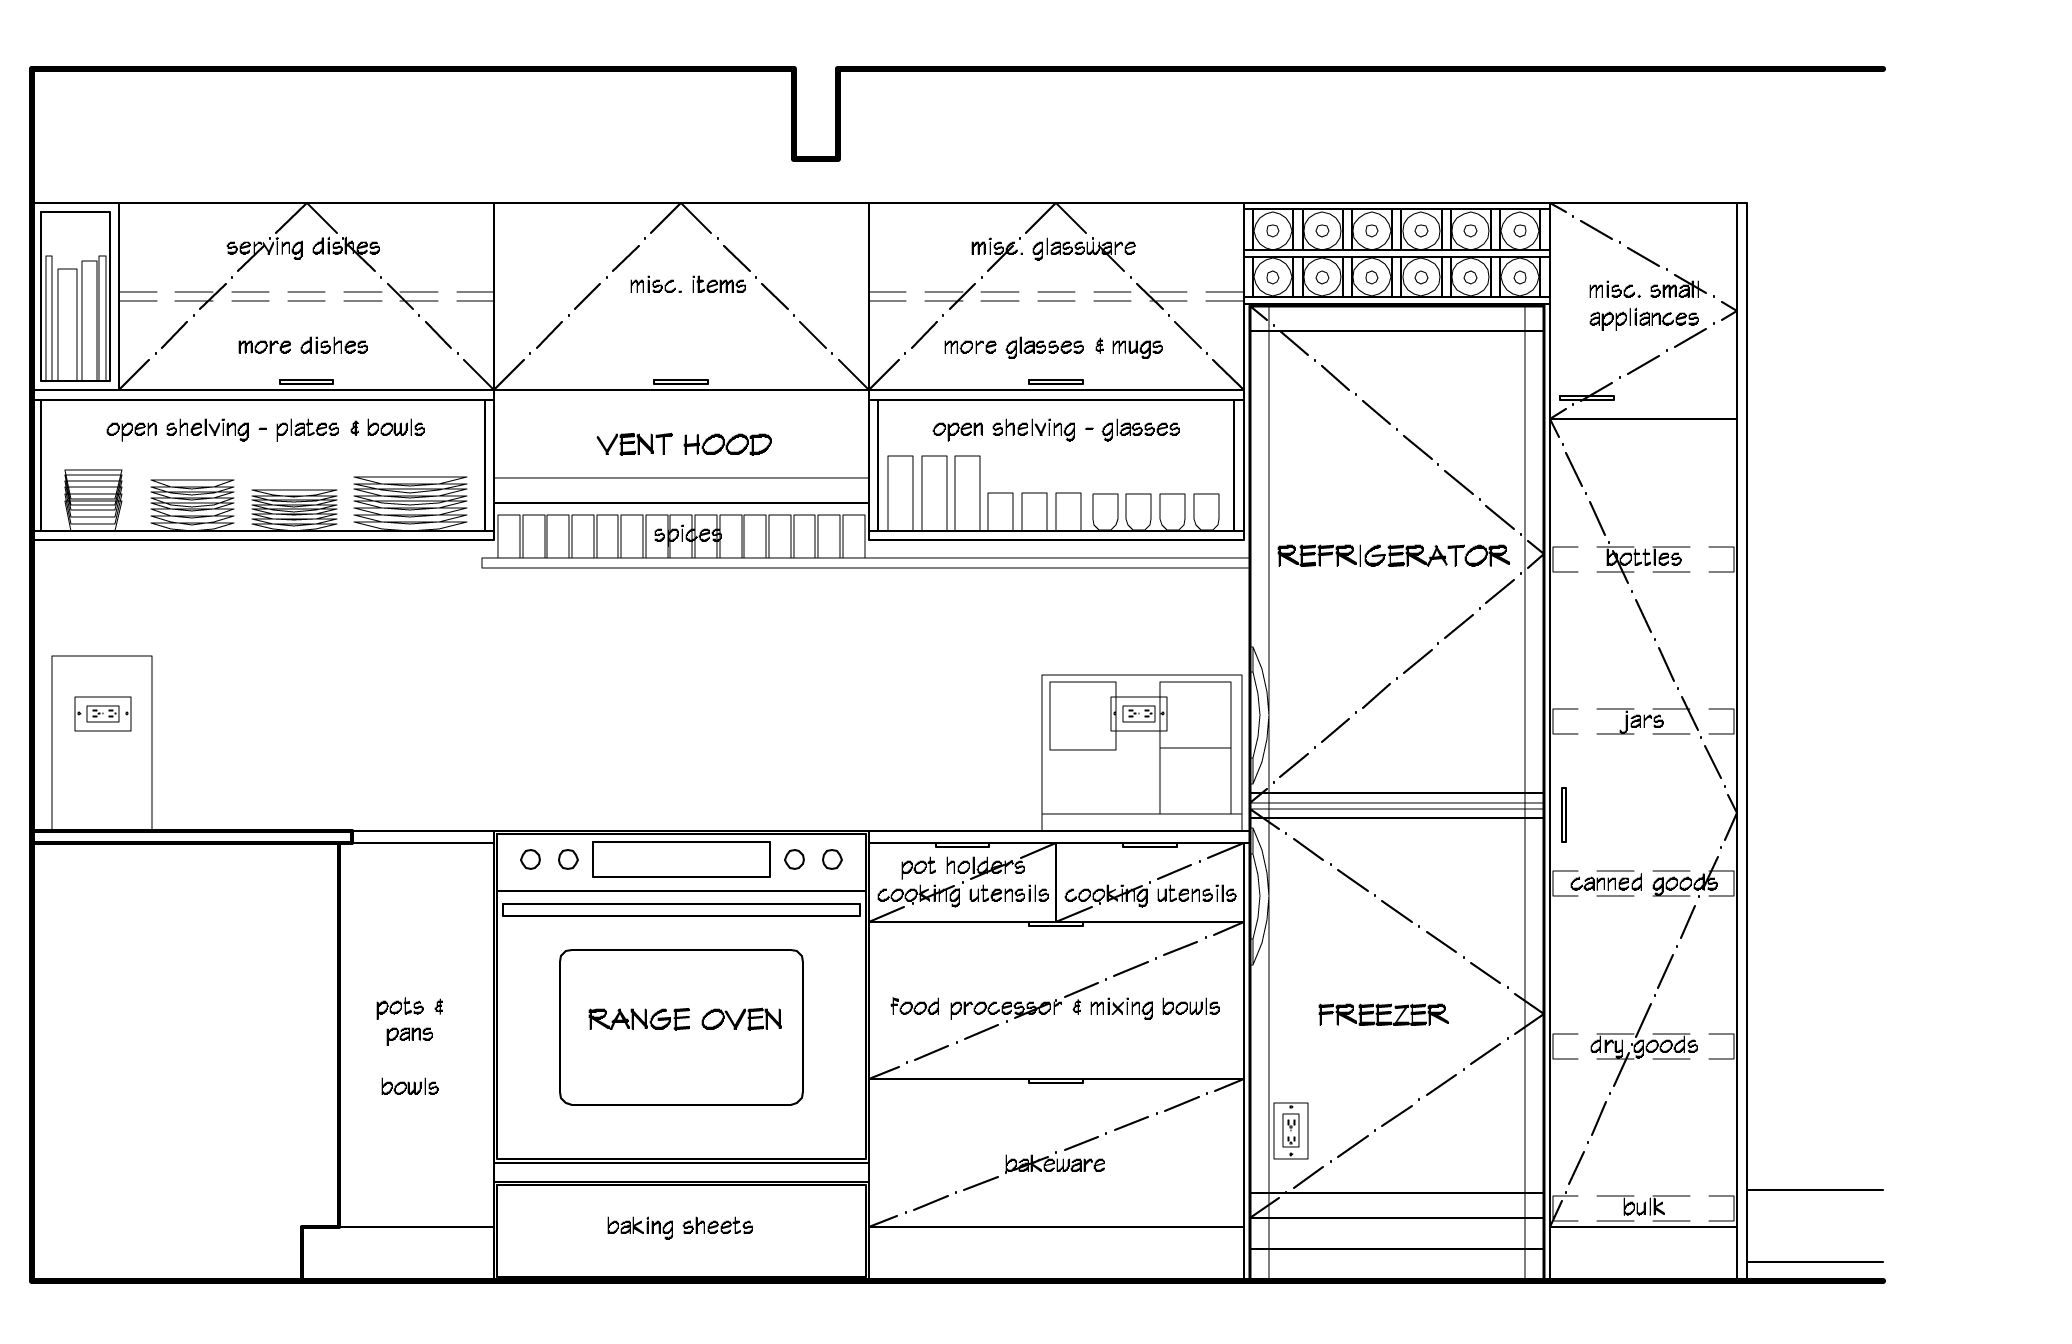 kitchen south   Kitchen floor plans, Pantry layout, Pantry design